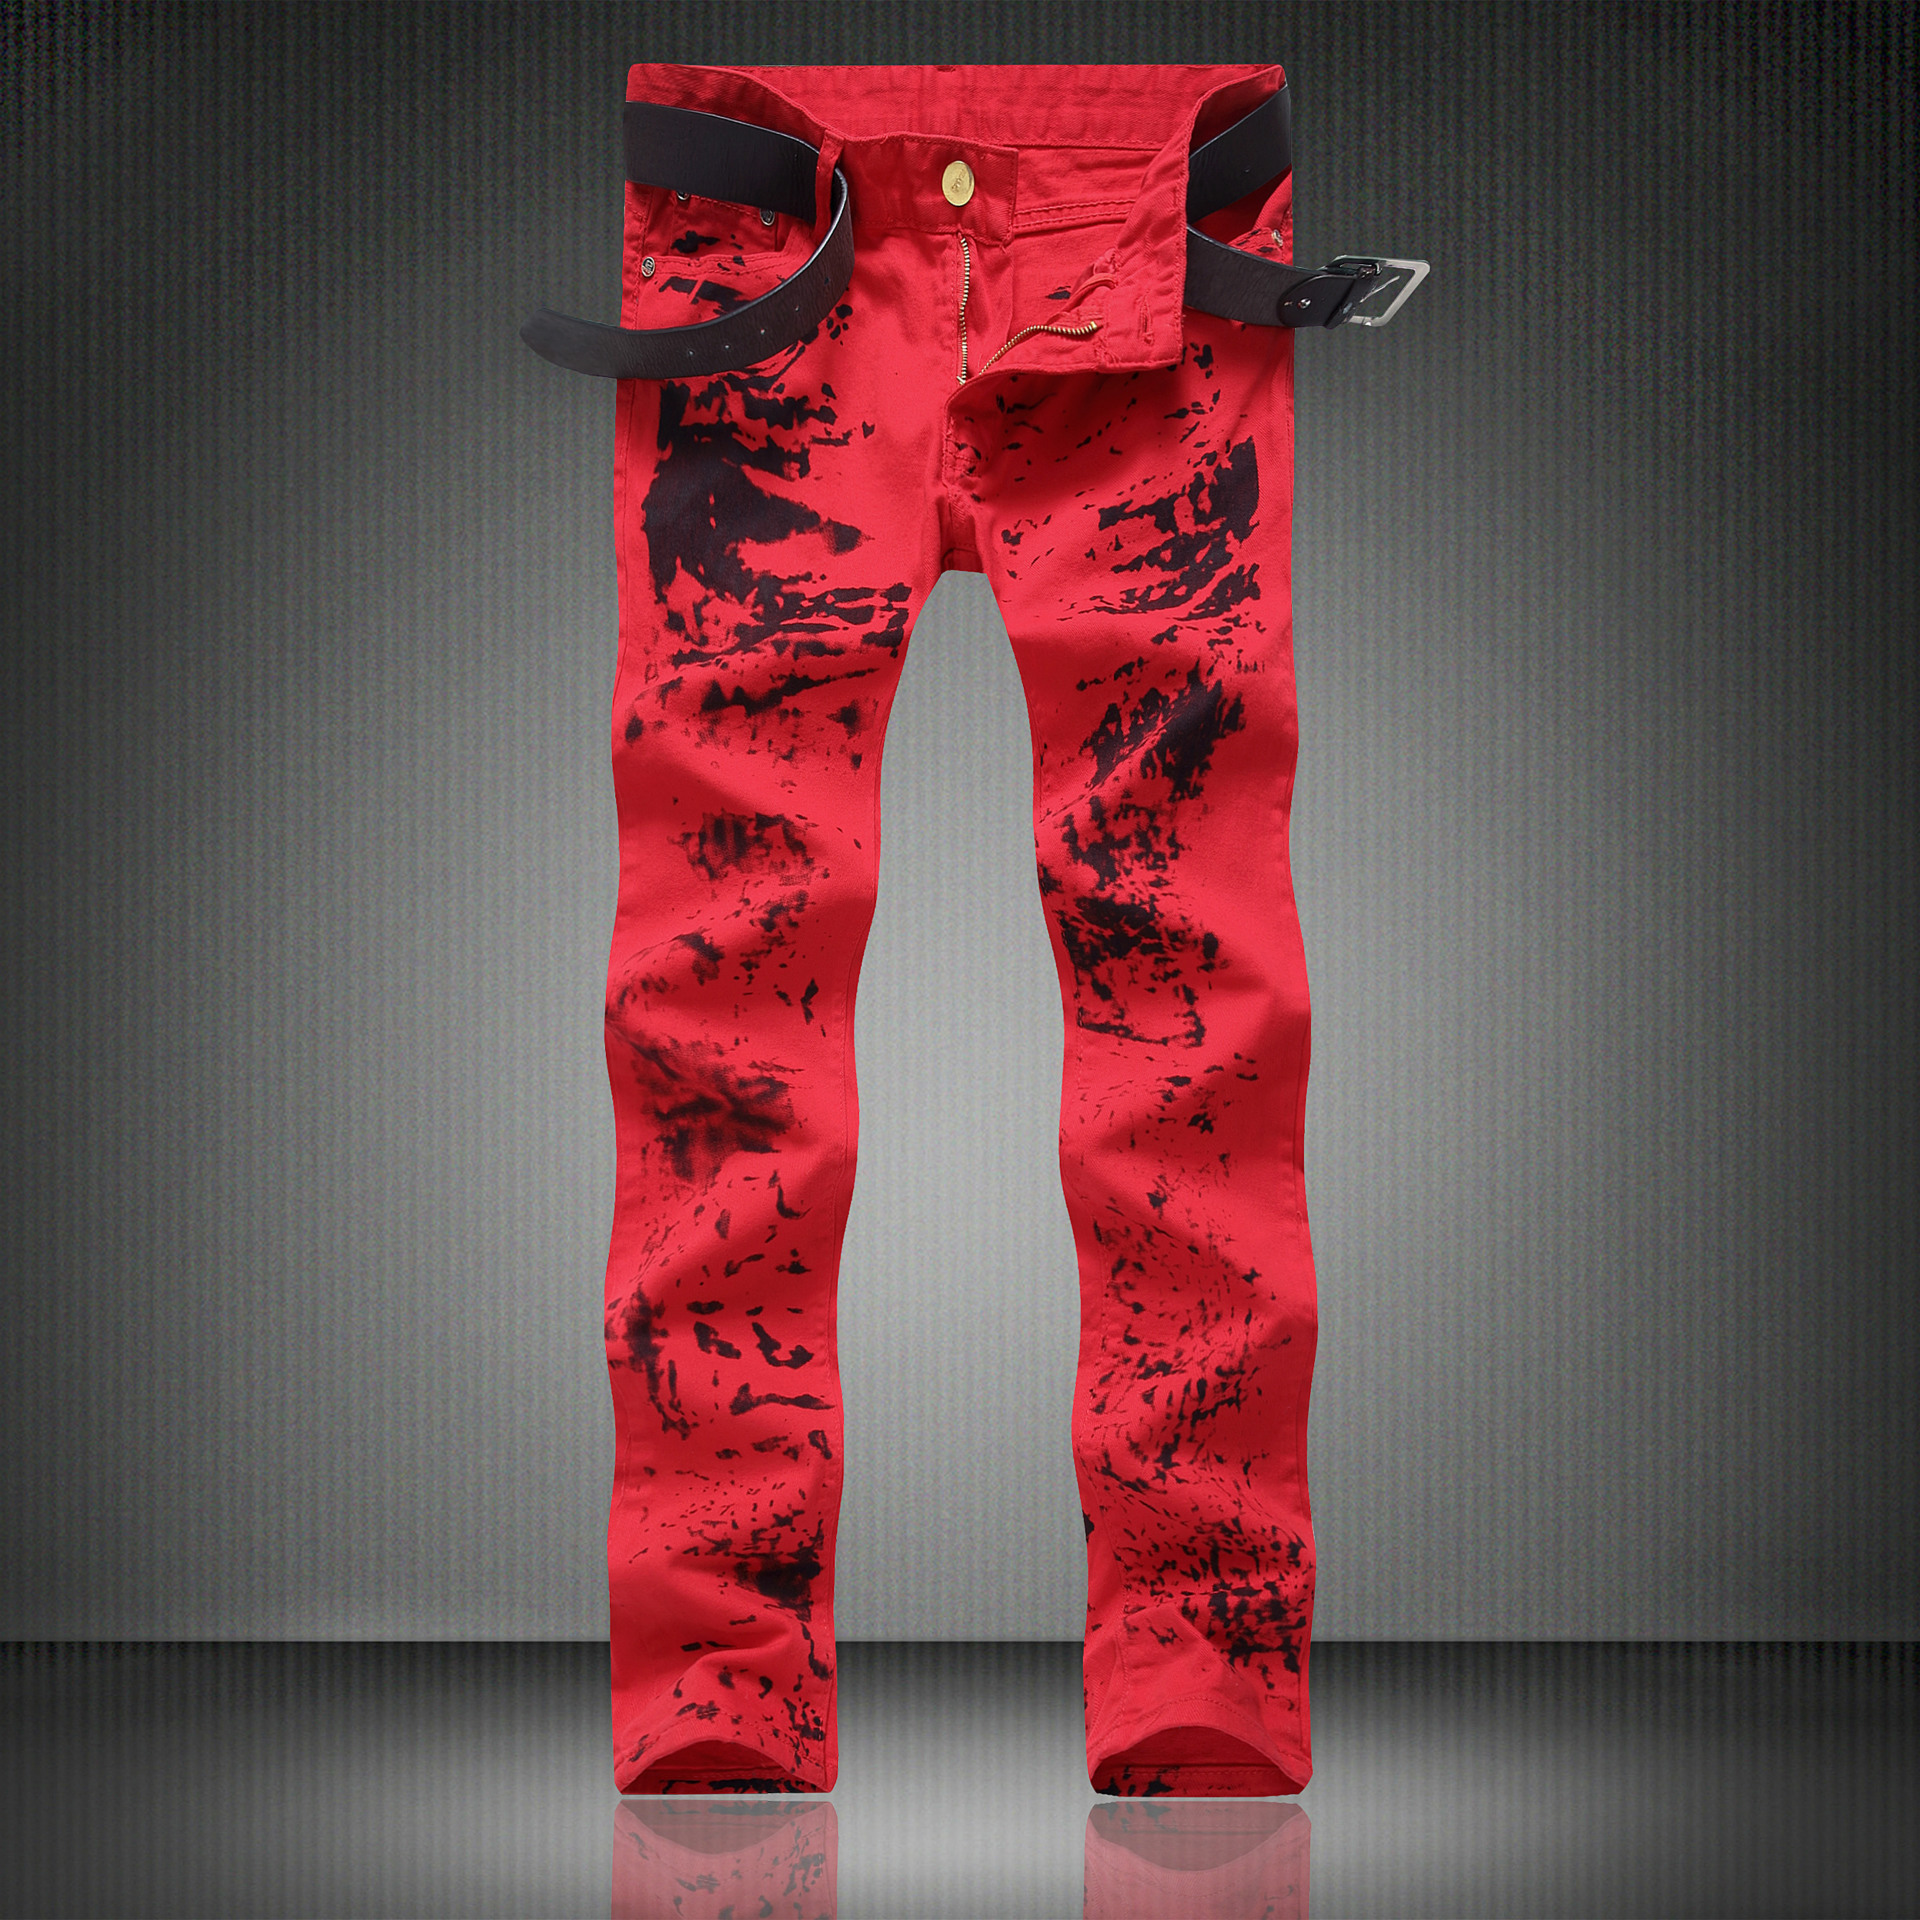 High Quality Red Print Jeans Men Moto Zipper Rap Jeans 2017 New Mens Pants Slim Fit Jeans Men Biker Denim Red Classic Jean menÎäåæäà è àêñåññóàðû<br><br>